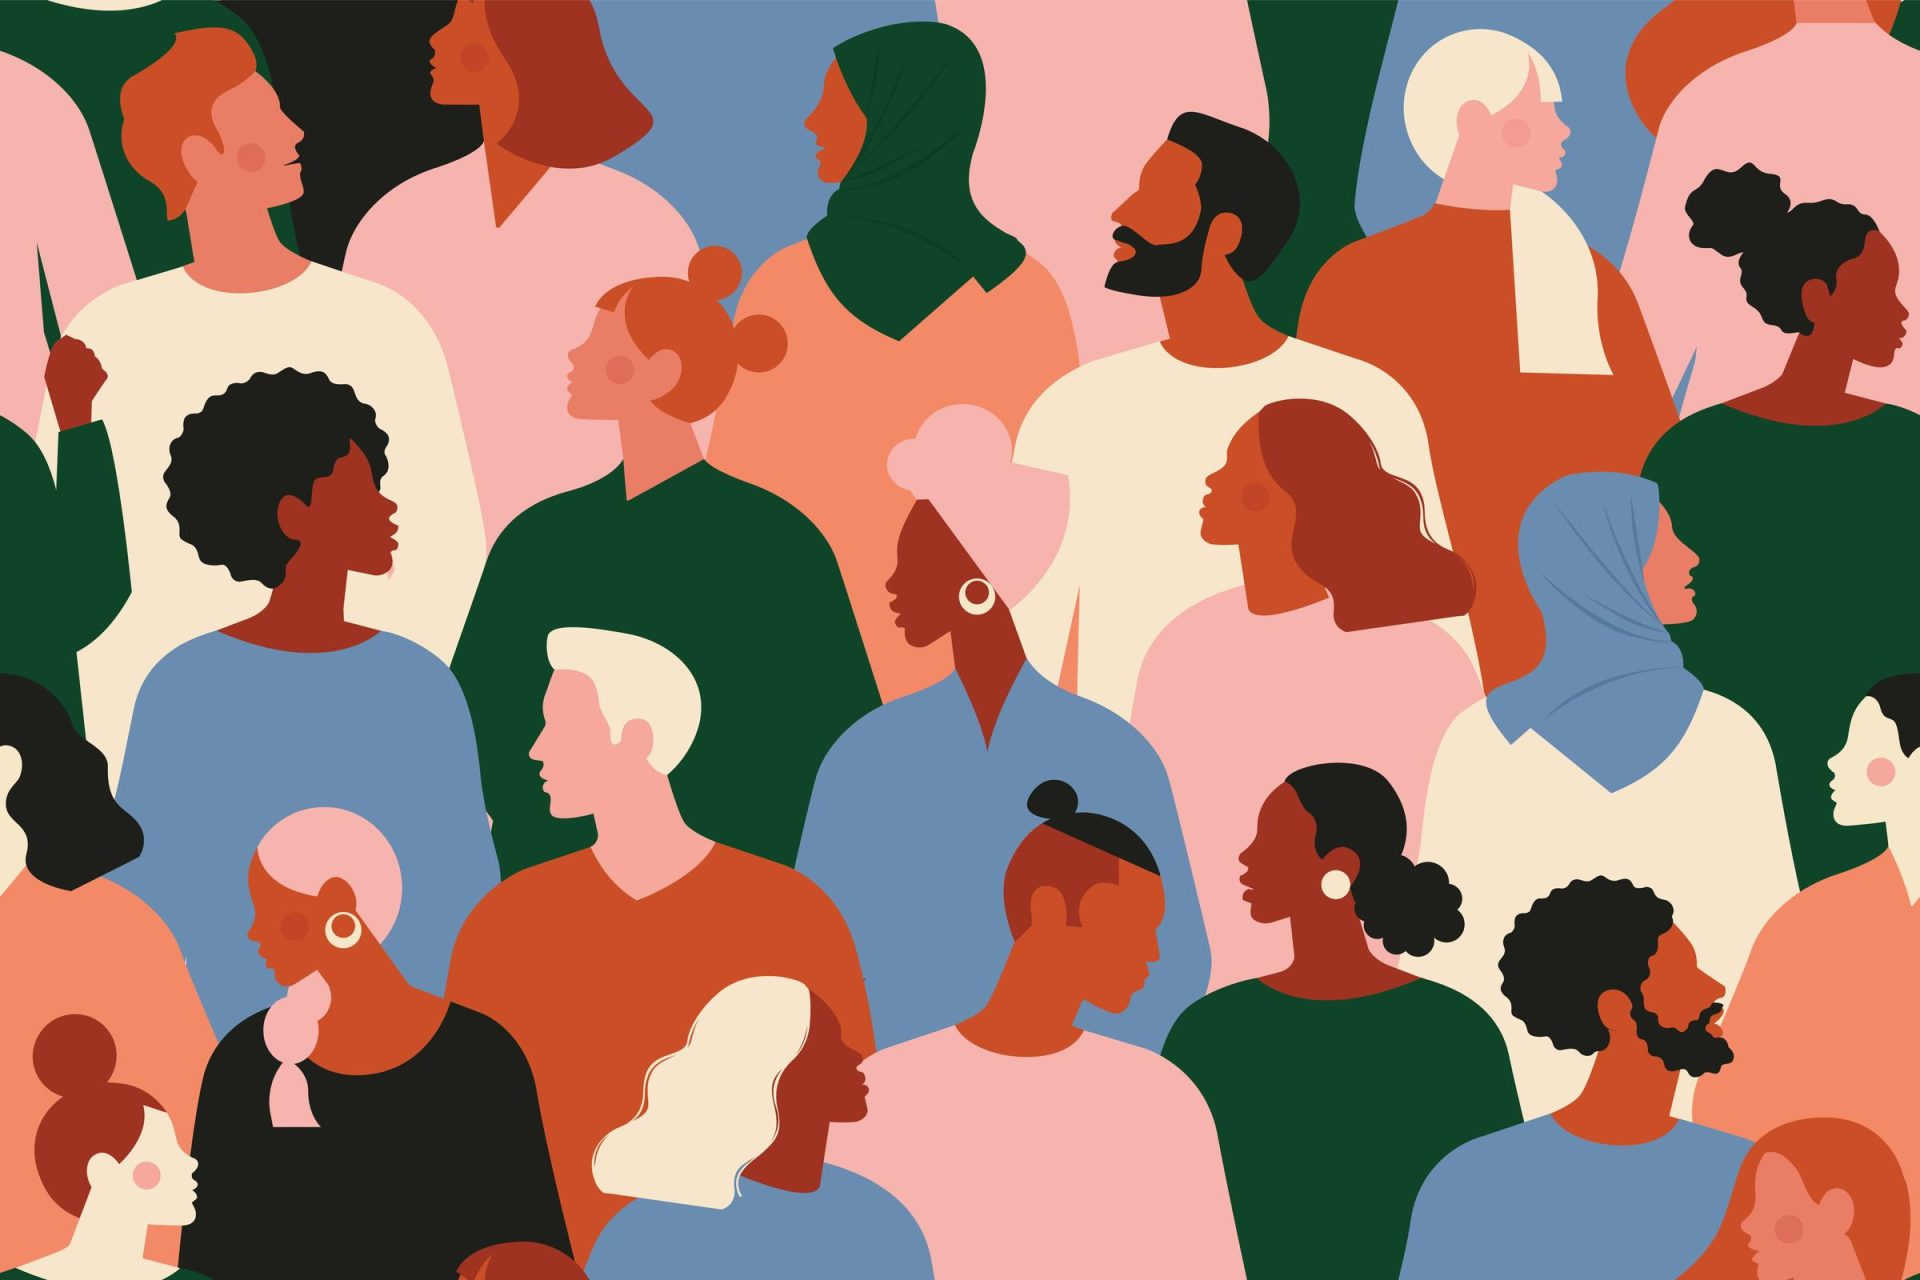 Exploring the dimensions of diversity & inclusion